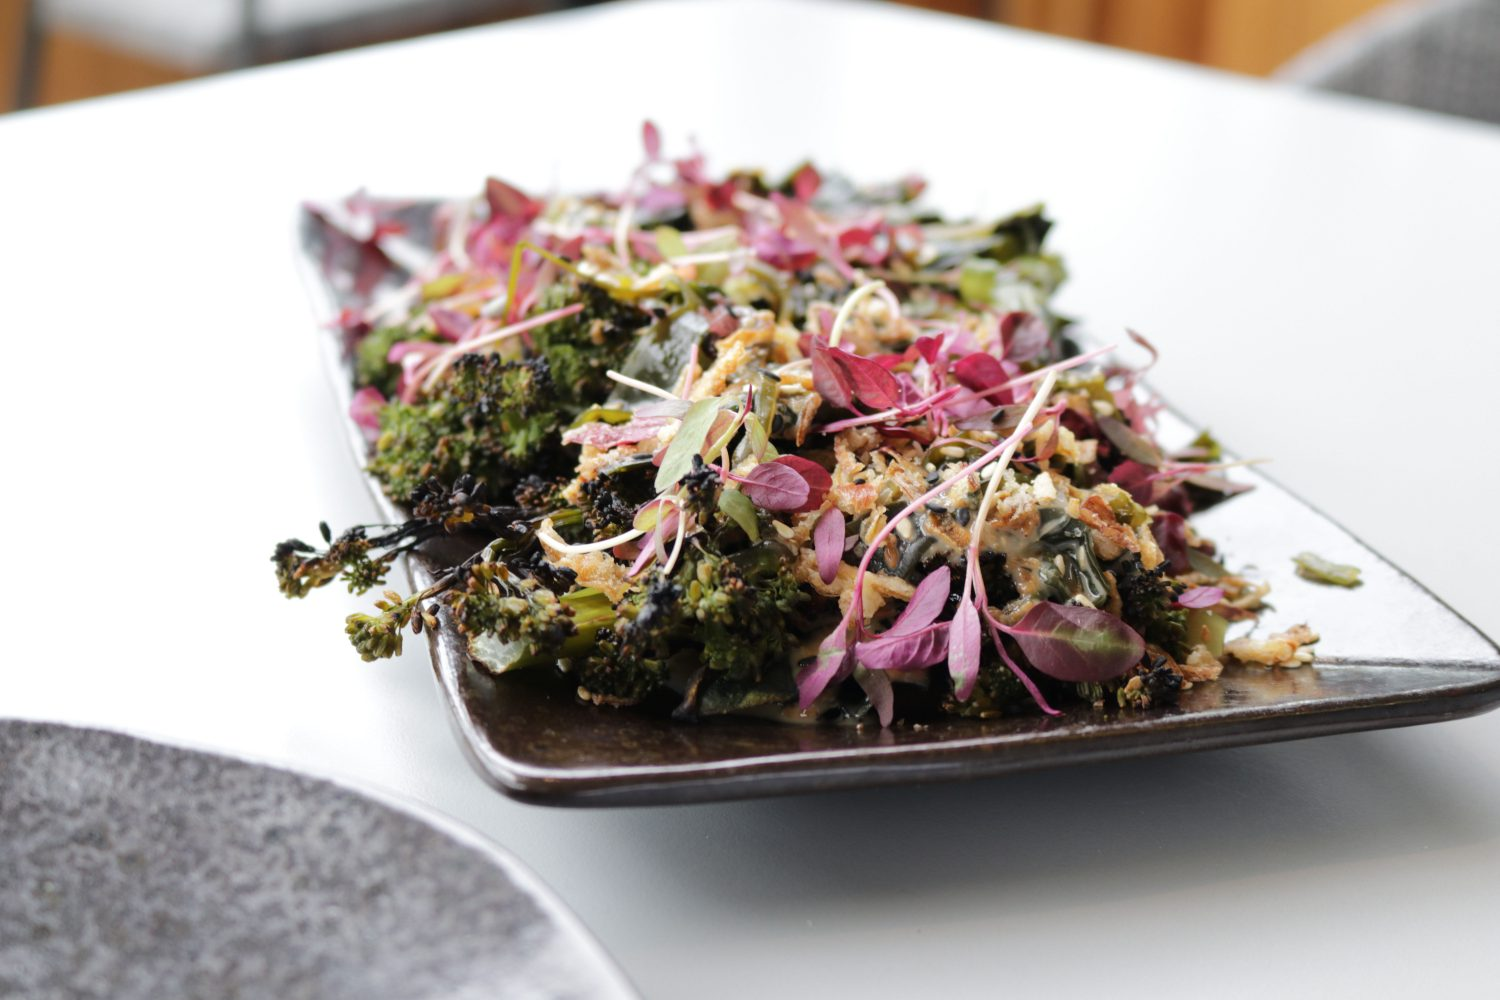 The Rooftop - Brunch Broccoli